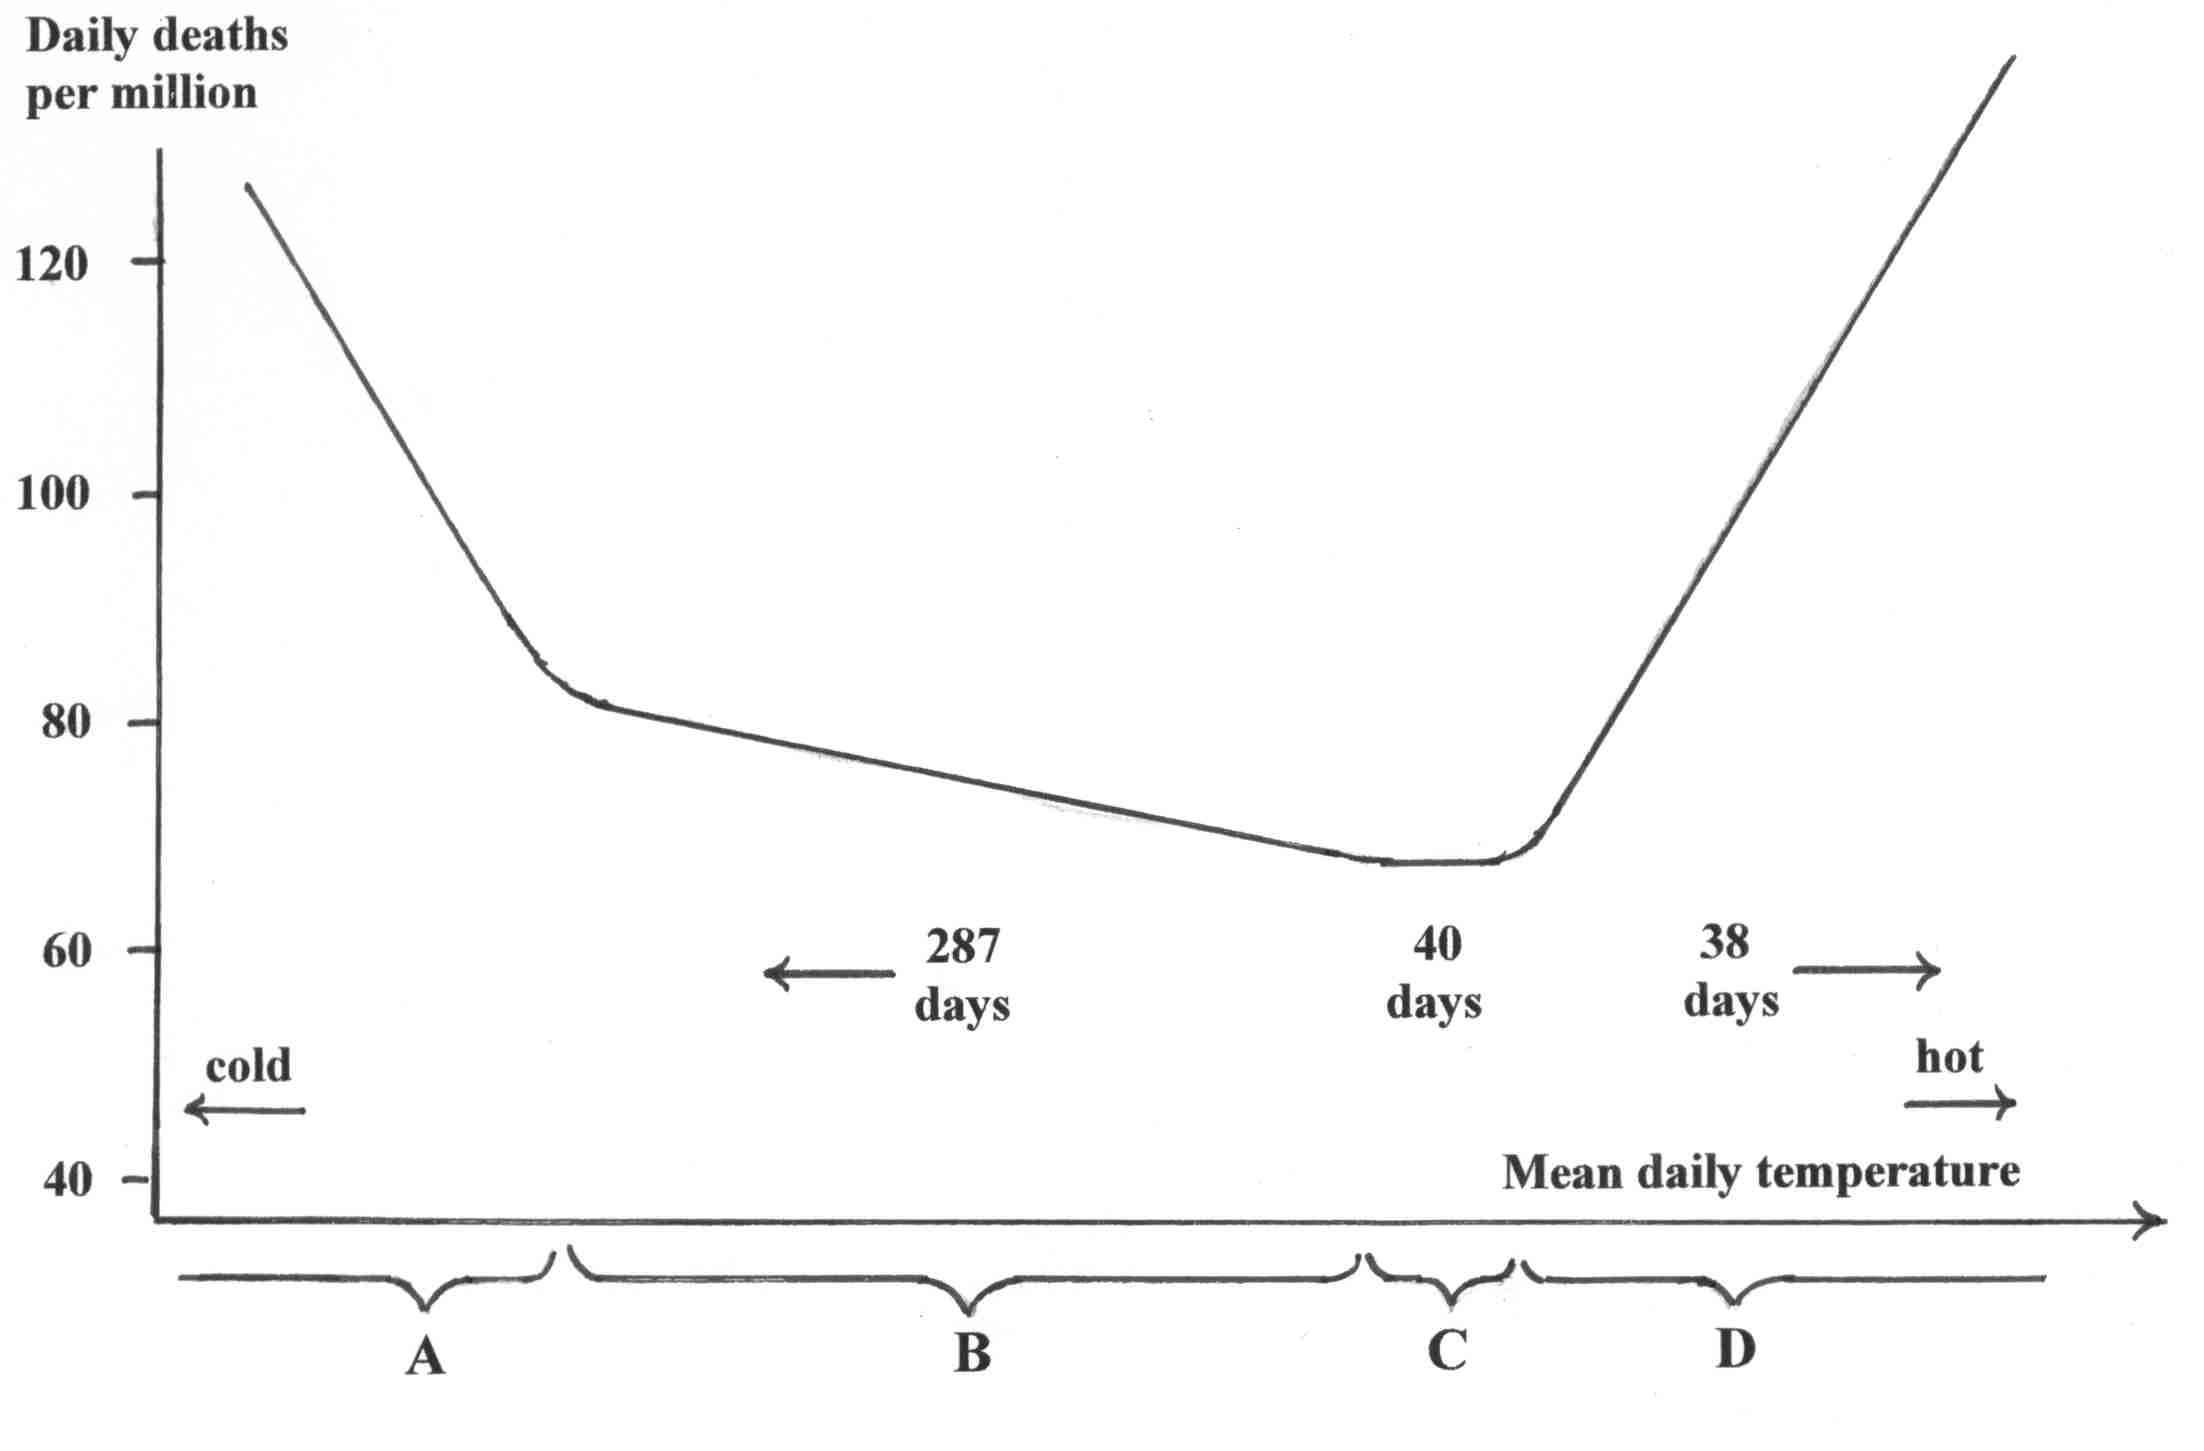 Relation between daily temperature and daily death rate